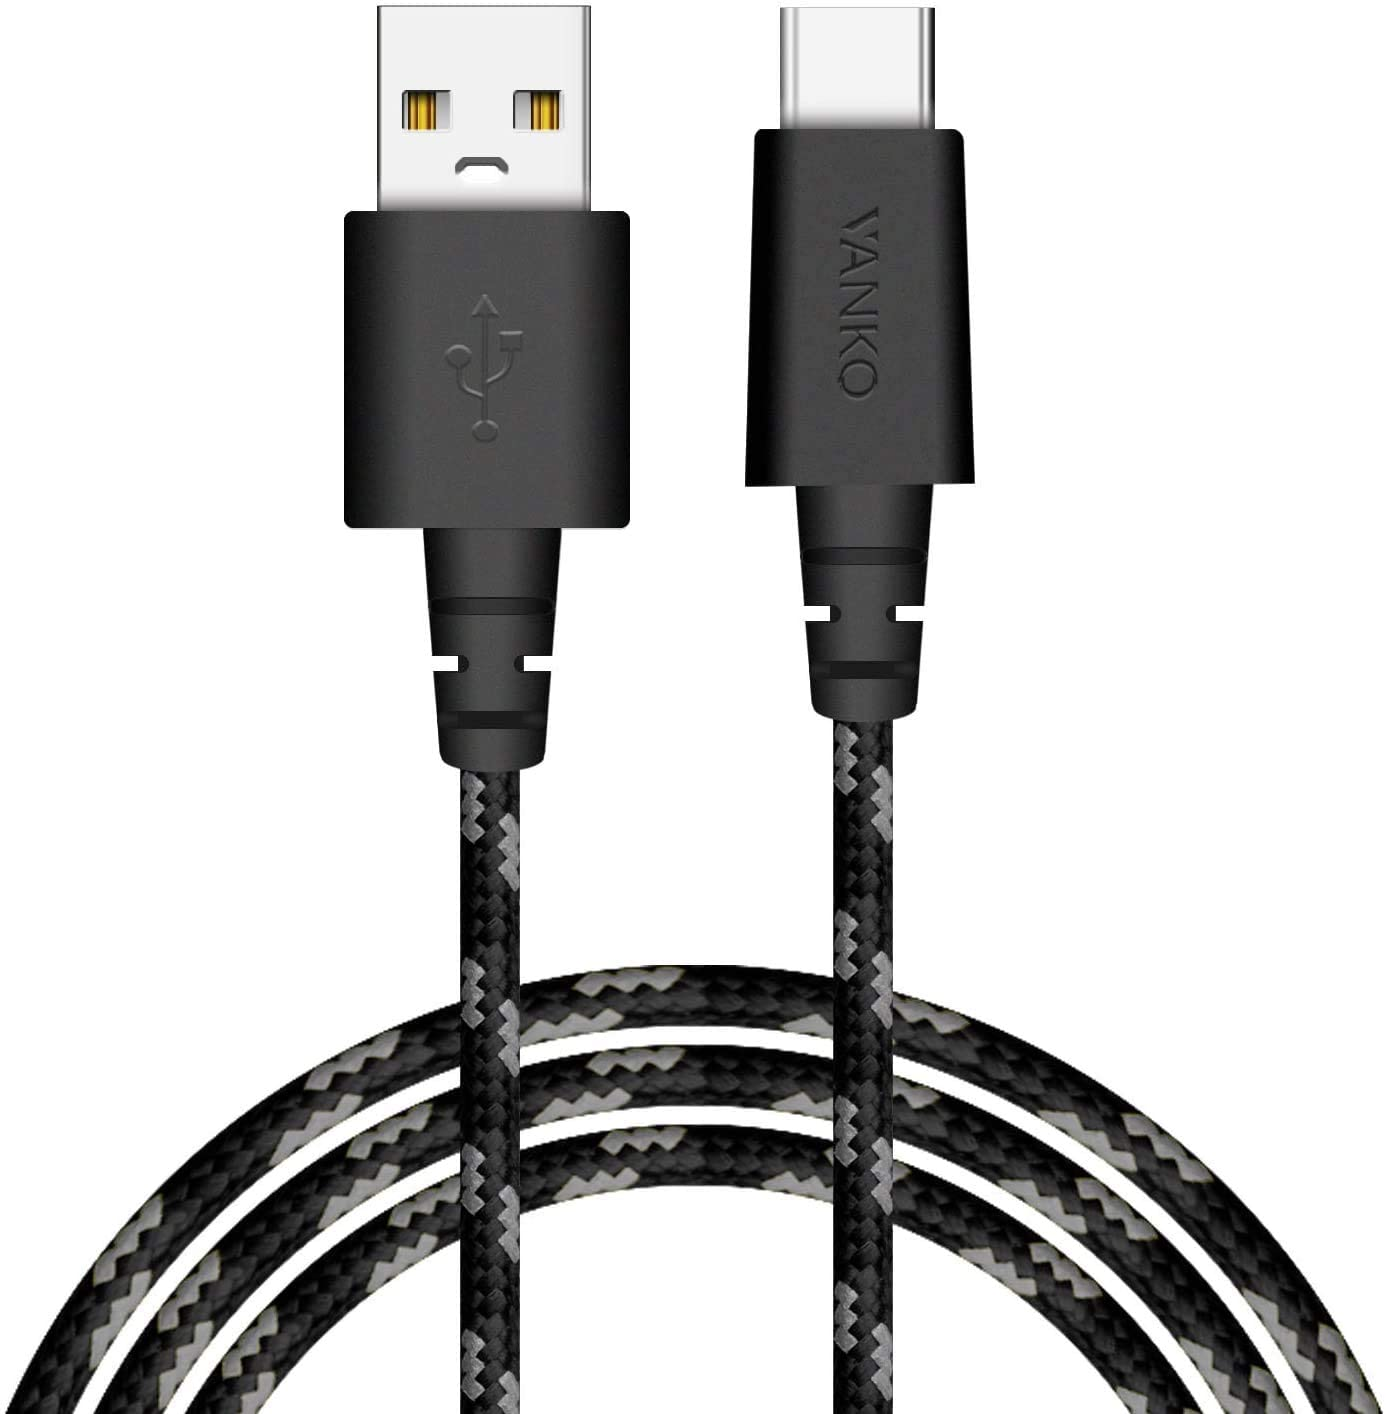 USB C Fast Charging Cable, VANKO USB C to USB A Charger (5ft/2 Pack), Nylon Braided Fast Charging Cord for Samsung Galaxy S10 S9 S8 S8 Plus Note 9 8, Pixel, LG V30 G6 G5, Moto Z Z2,Switch (Black/Grey)